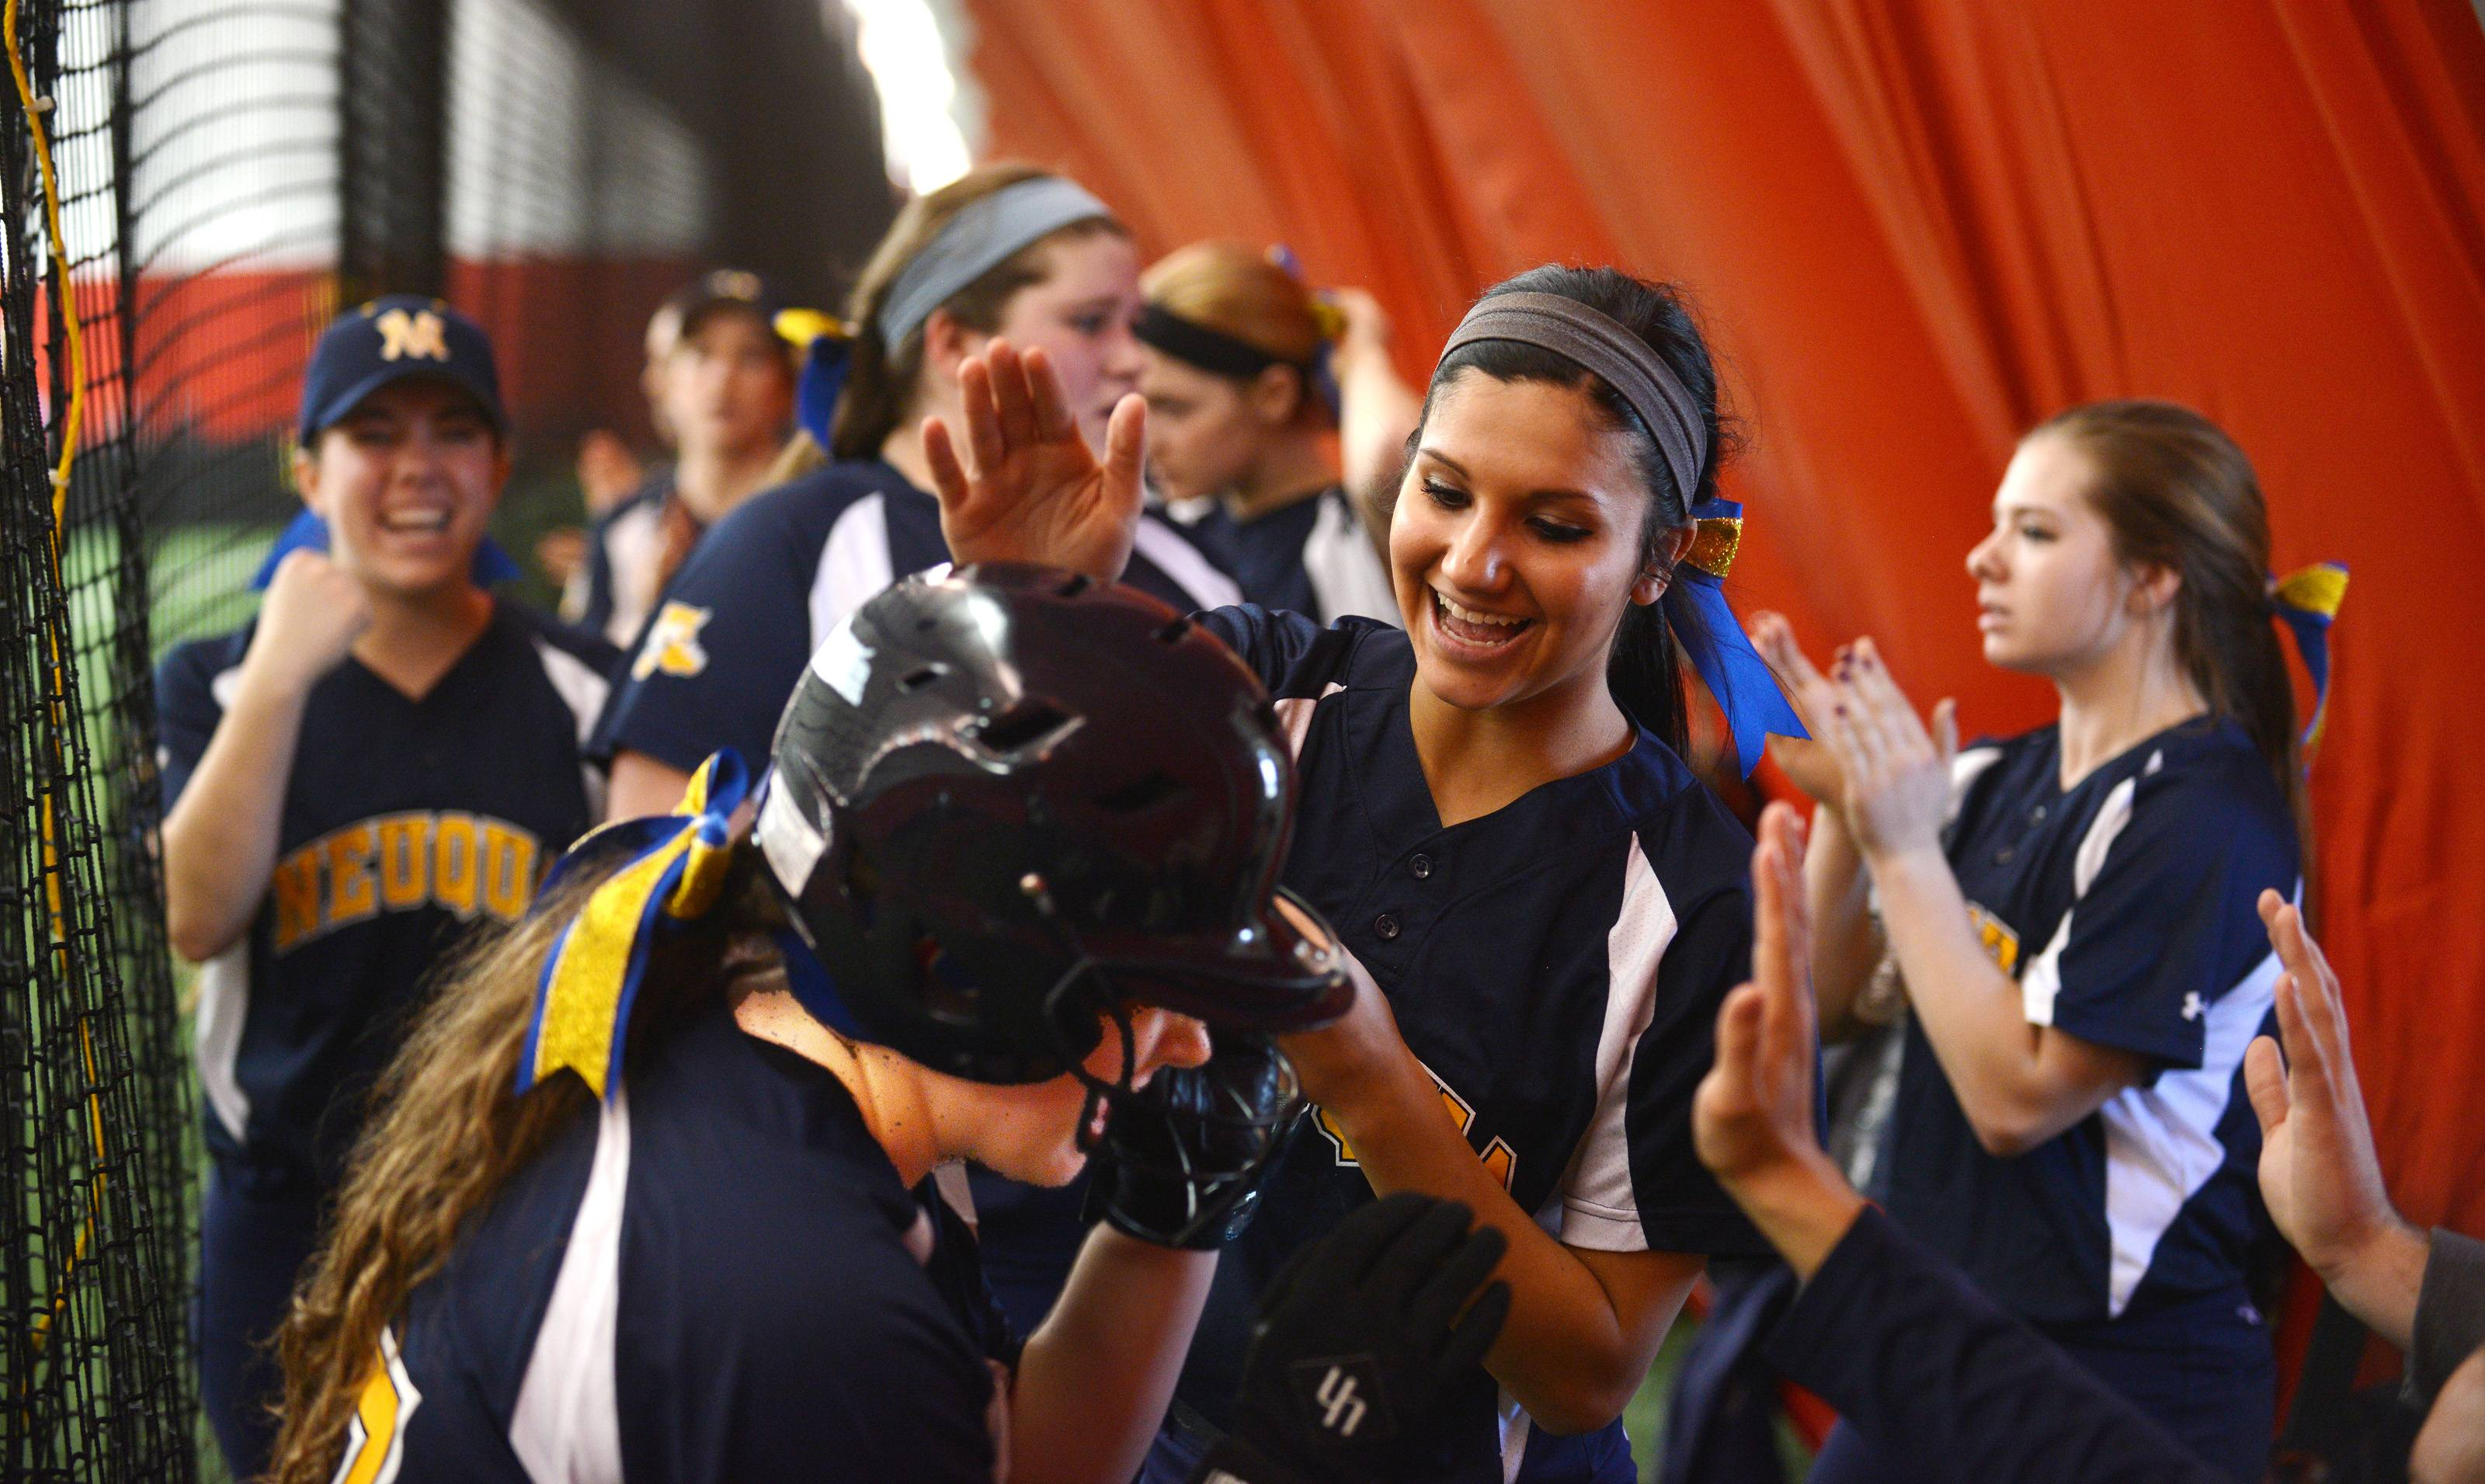 Benet played Neuqua Valley Monday, March 31 in indoor softball action in Rosemont. Neuqua Valley's Dominica Lange, foreground, is congratulated by teammates after sliding into home with the go-ahead run in the 4th inning.